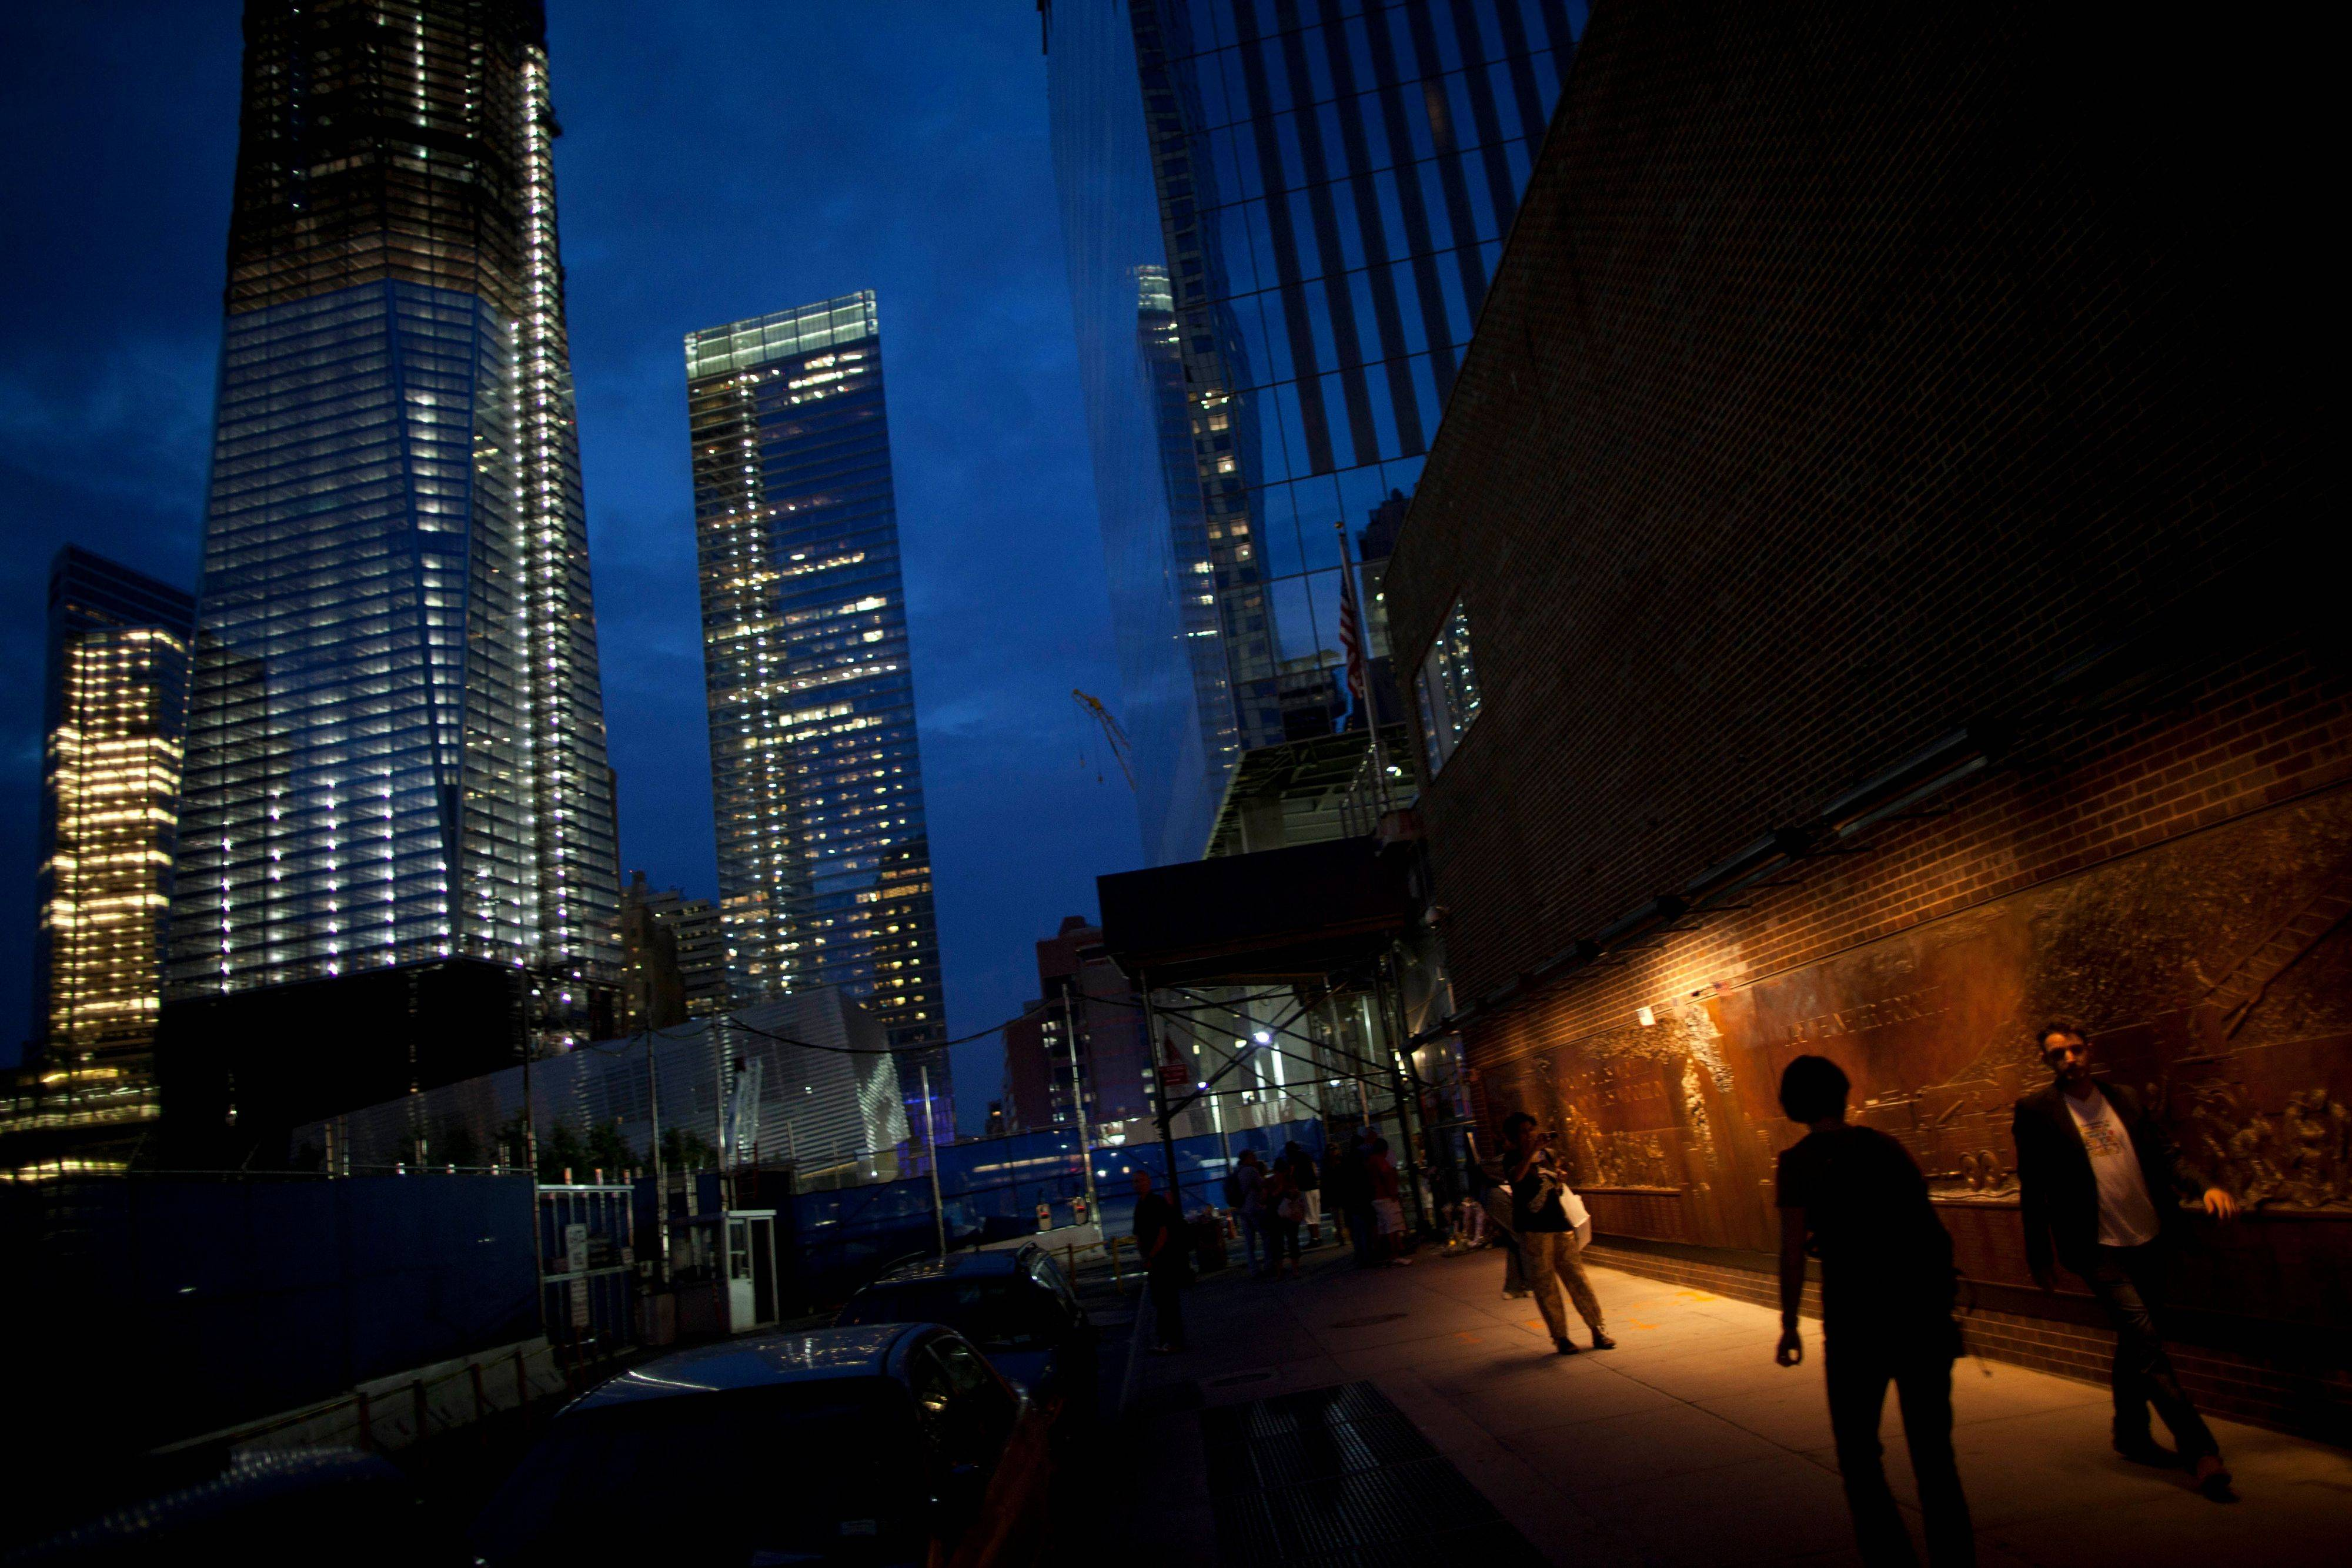 People walk past a memorial for firefighters, right, by the ground zero construction site in New York. Ten years after the 9/11 attacks, New York's prevailing mood is to resist the city's natural tides of forgetting, of moving on.